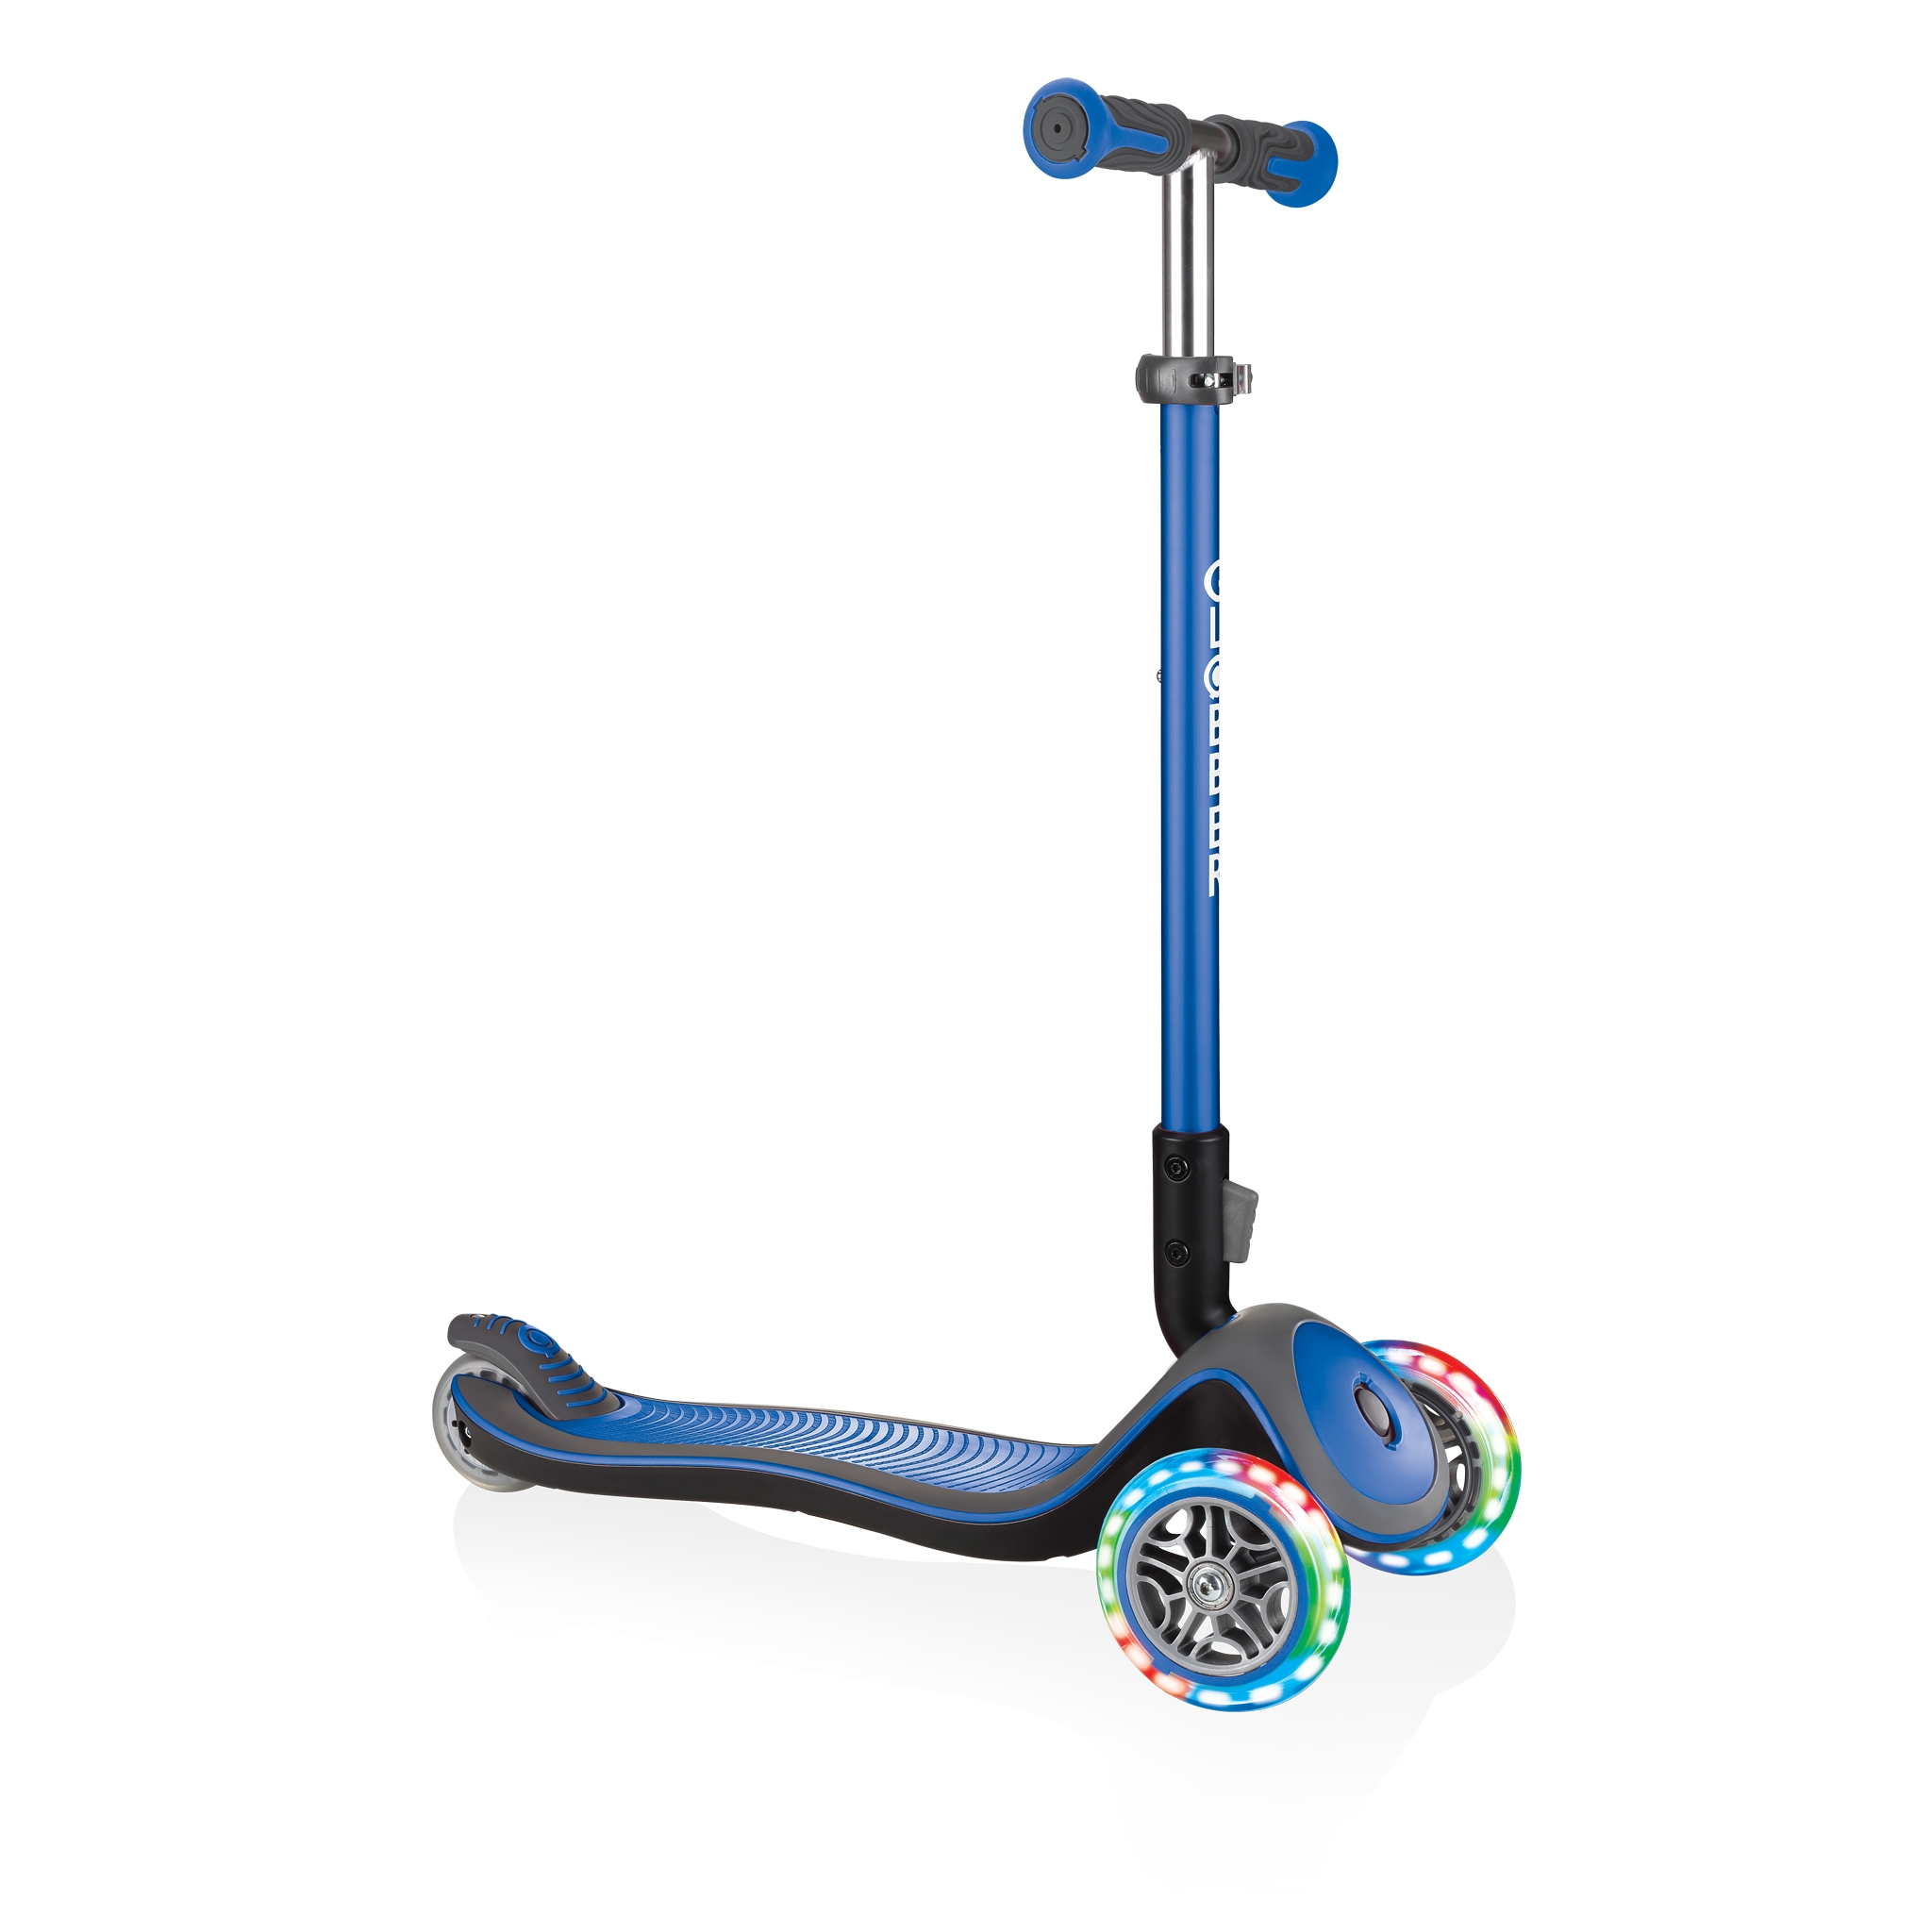 Globber-ELITE-DELUXE-LIGHTS-Best-3-wheel-light-up-scooter-for-kids-aged-3+-navy-blue 0